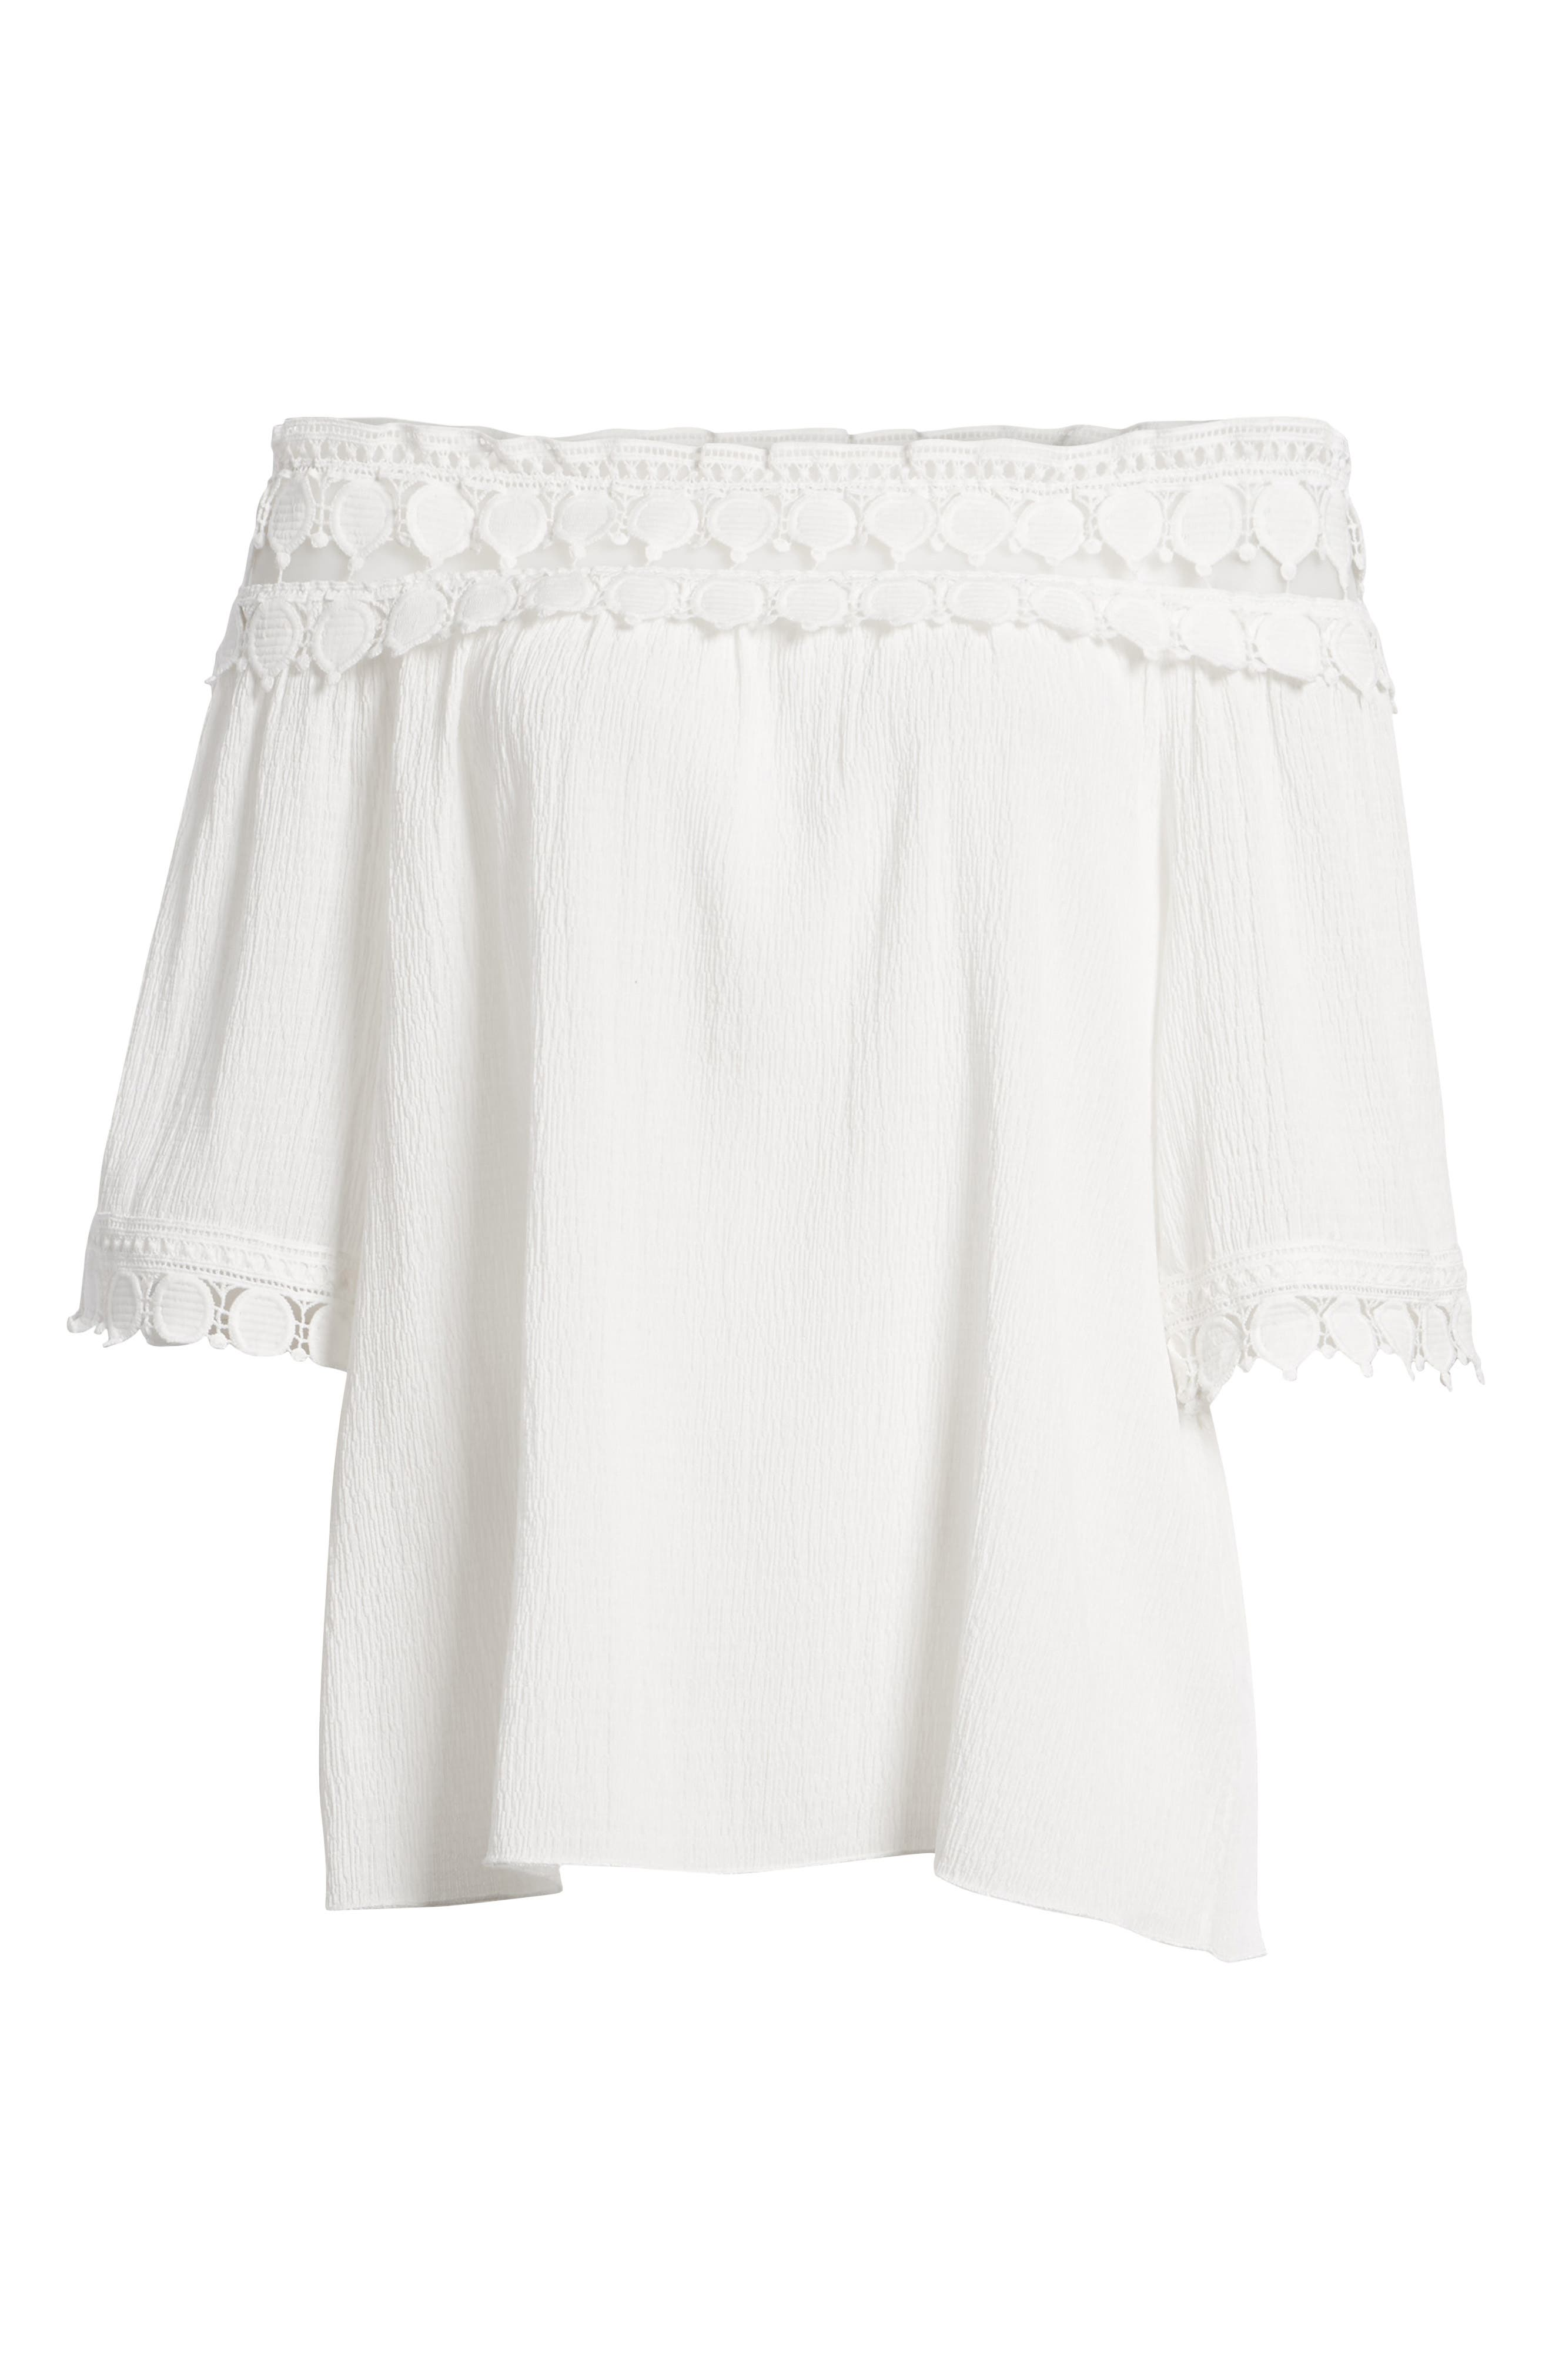 Bishop + Young Olivia Crochet Trim Off the Shoulder Top,                             Alternate thumbnail 7, color,                             White